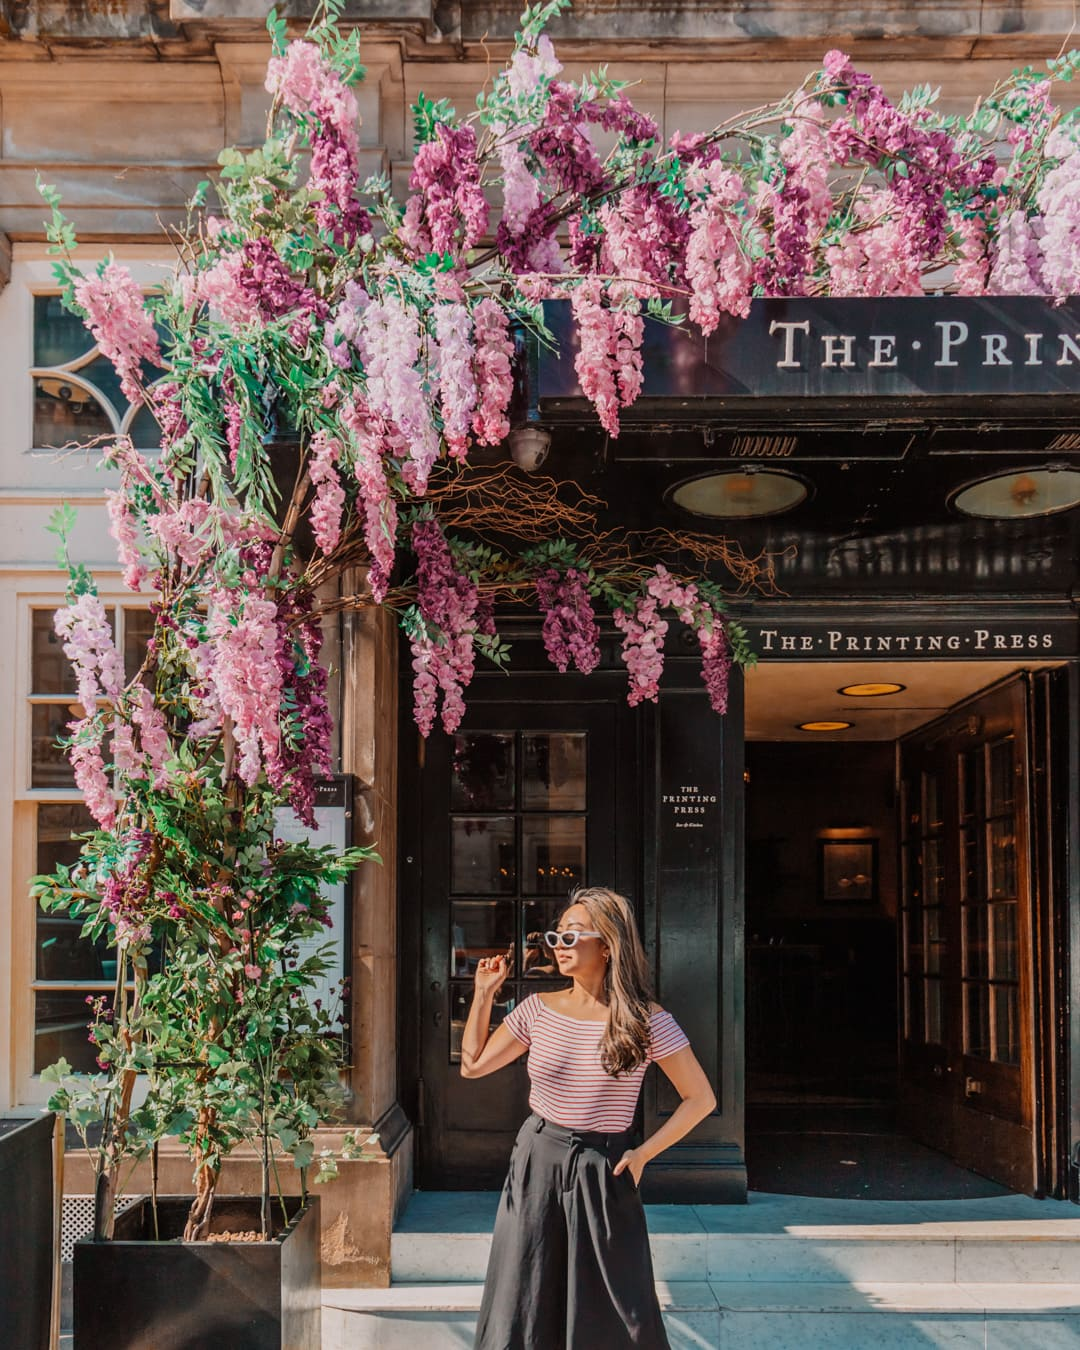 The Printing Press, one of the most Instagrammable places in Edinburgh